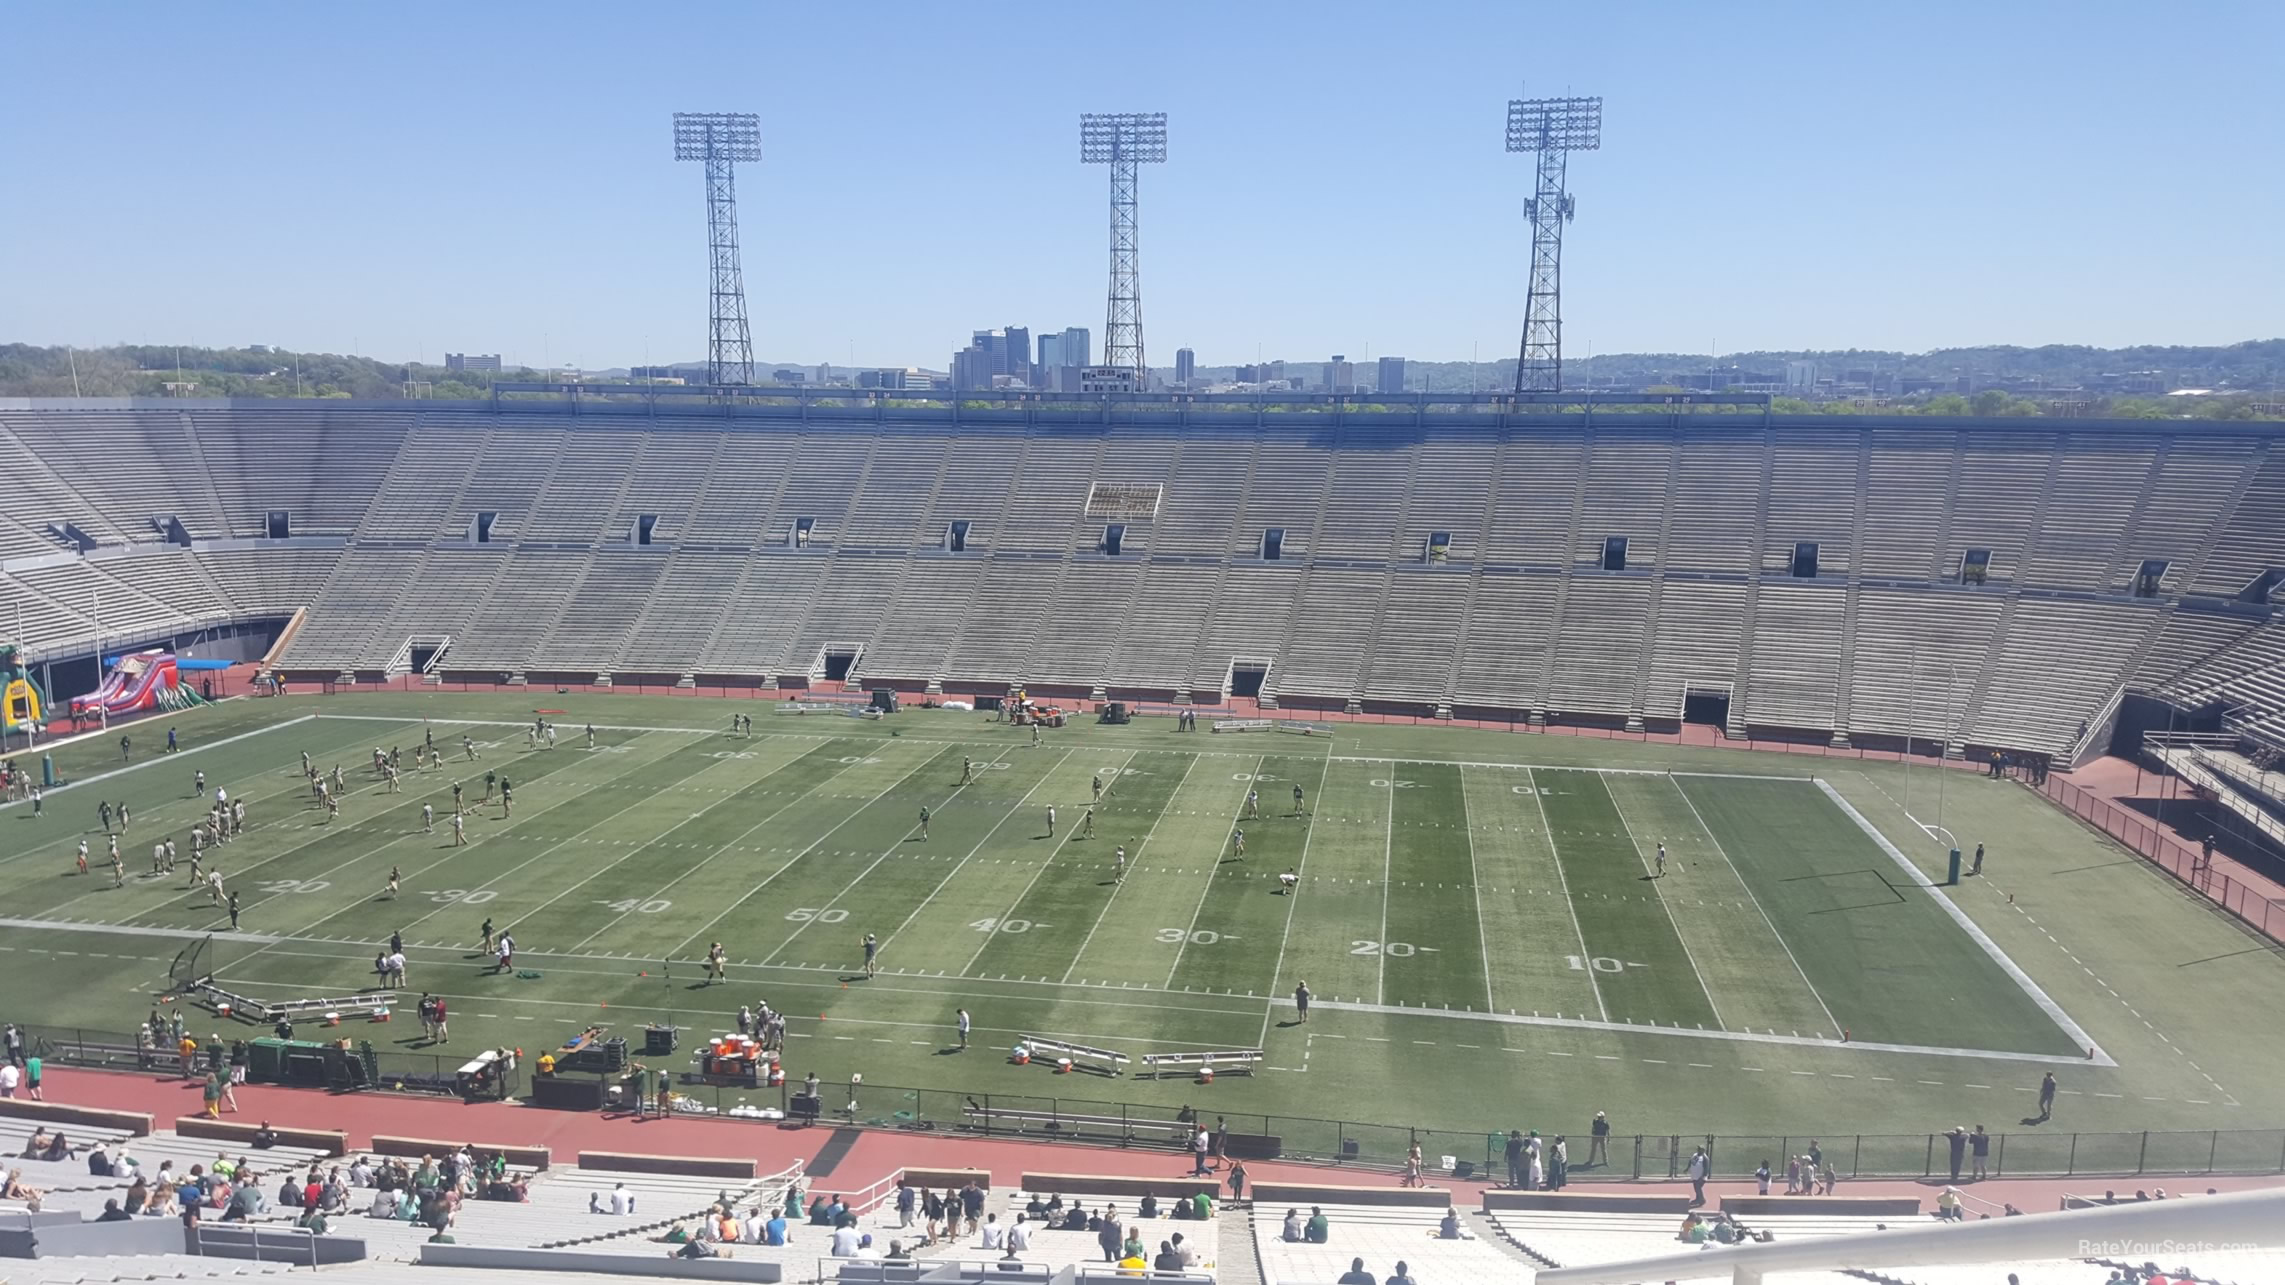 Section 8U1 seat view